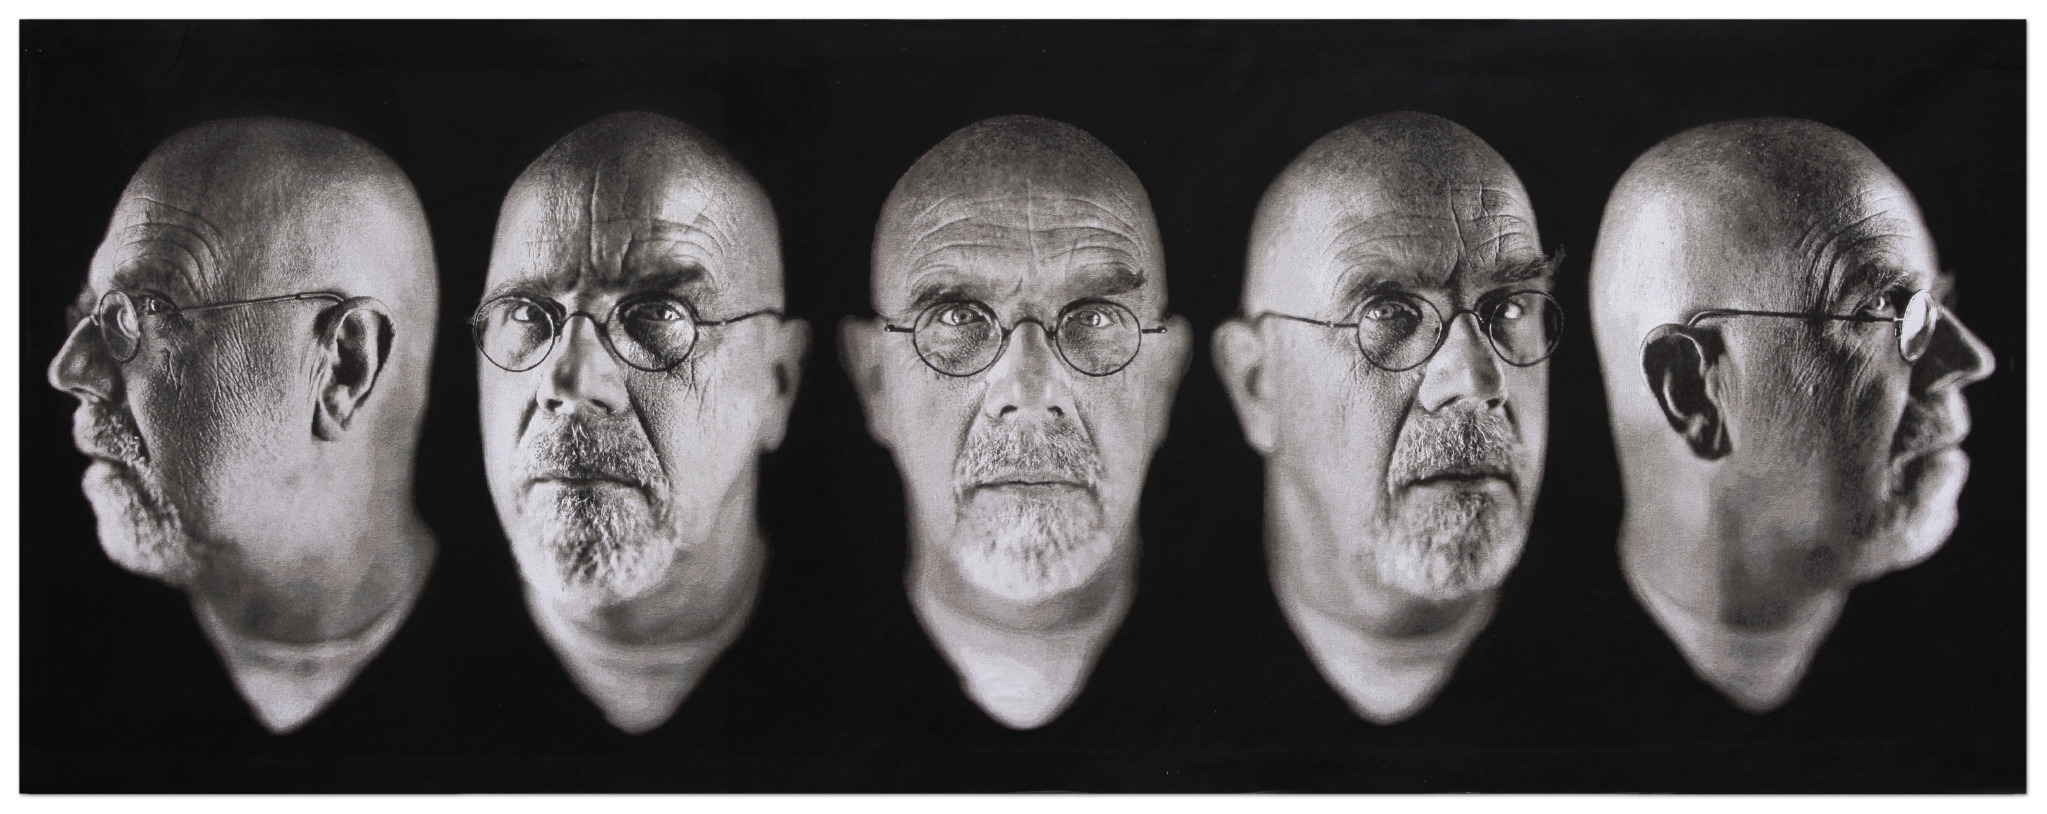 <p>Chuck Close. <i>Self-Portrait/Five Part</i>. 2009. Jacquard tapestry. Private Collection. Image courtesy of Magnolia Editions.</p>